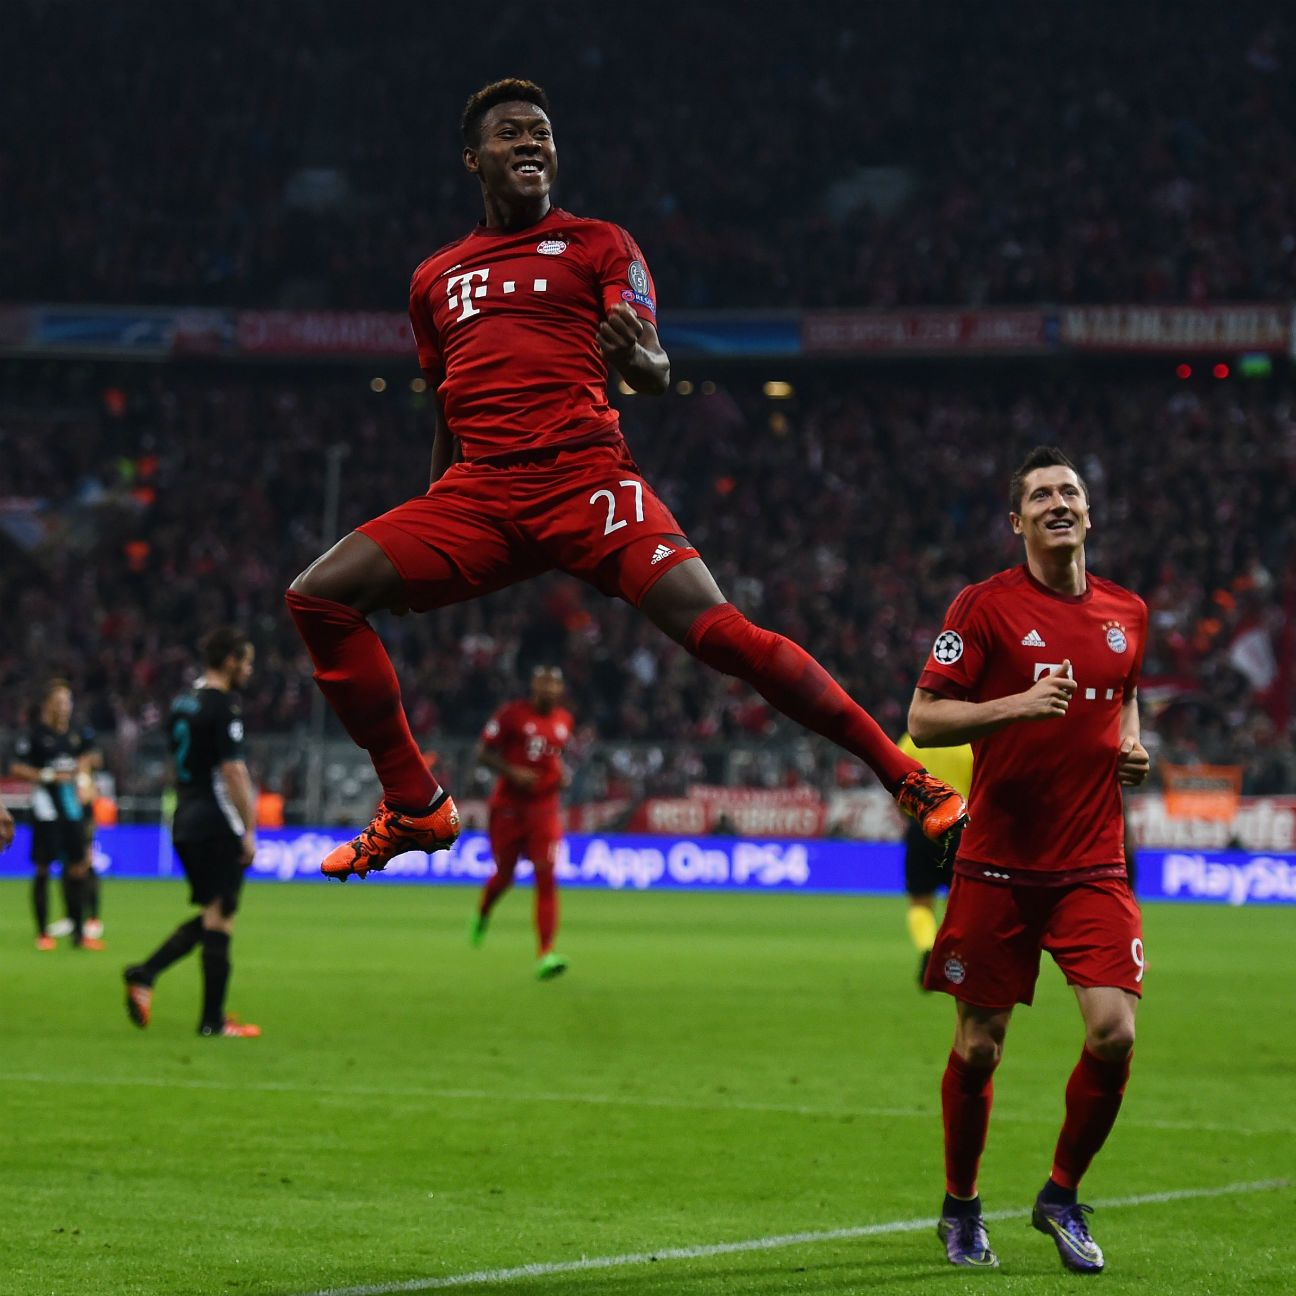 David Alaba's curling strike on the stroke of half-time all but sealed the three points for Bayern.